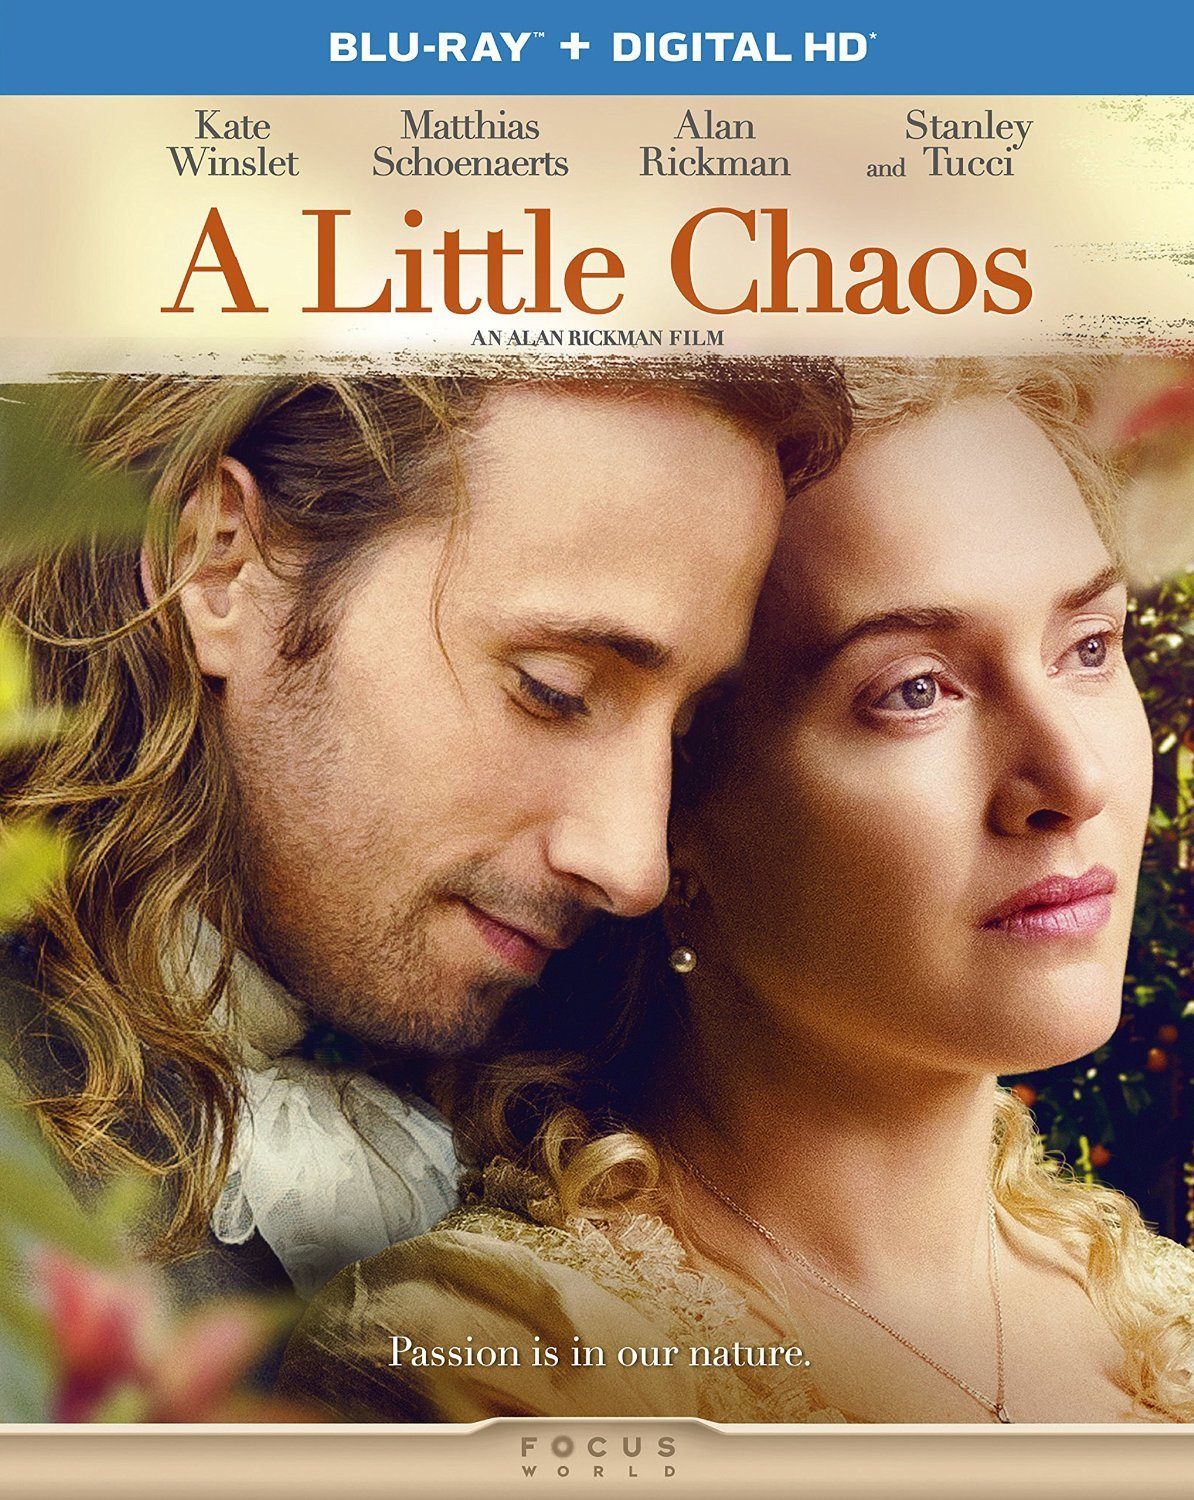 A Little Chaos Blu-ray Review